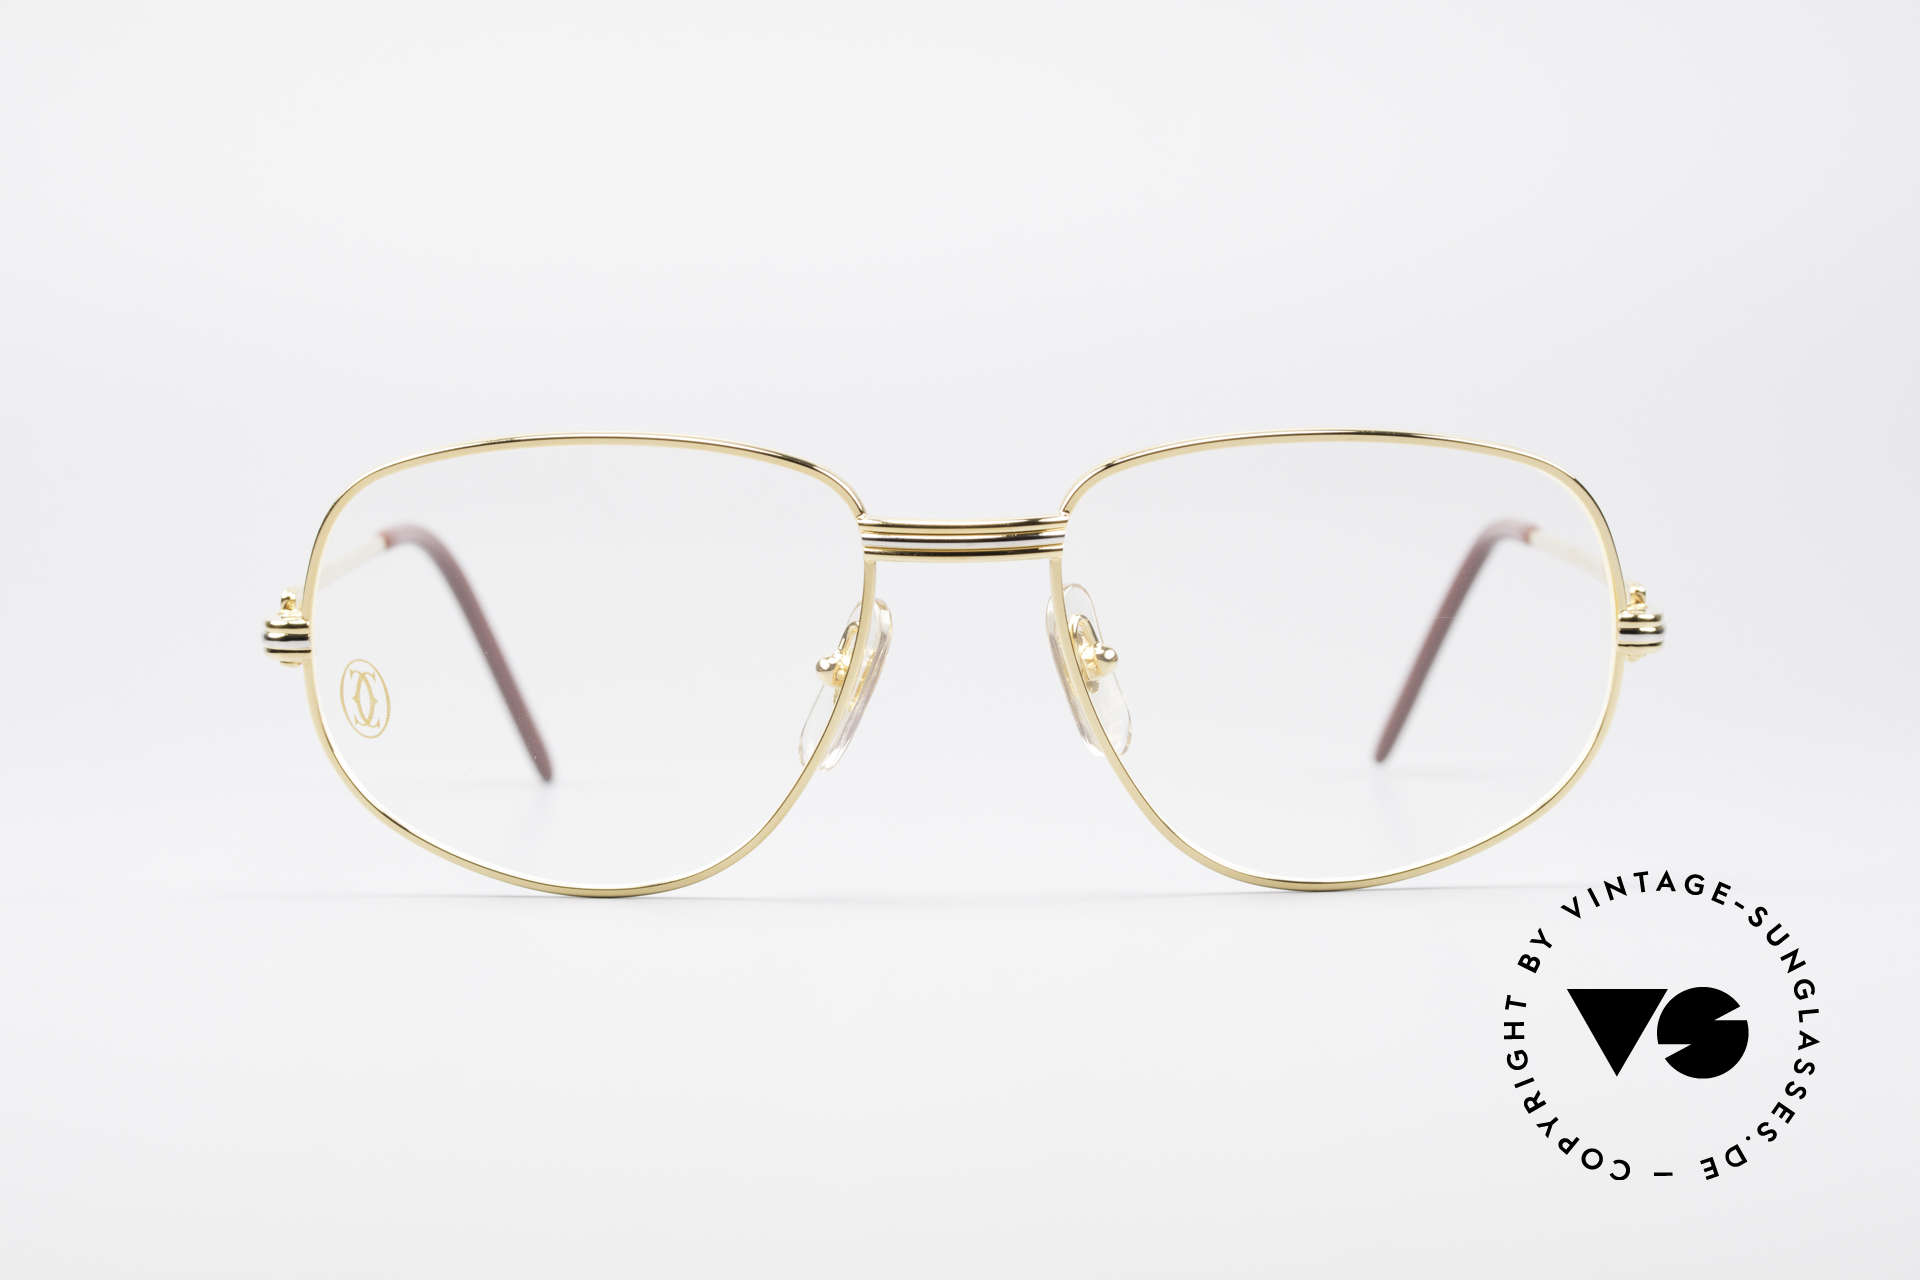 """Cartier Romance LC - M Luxury Designer Glasses, mod. """"Romance"""" was launched in 1986 and made till 1997, Made for Men and Women"""